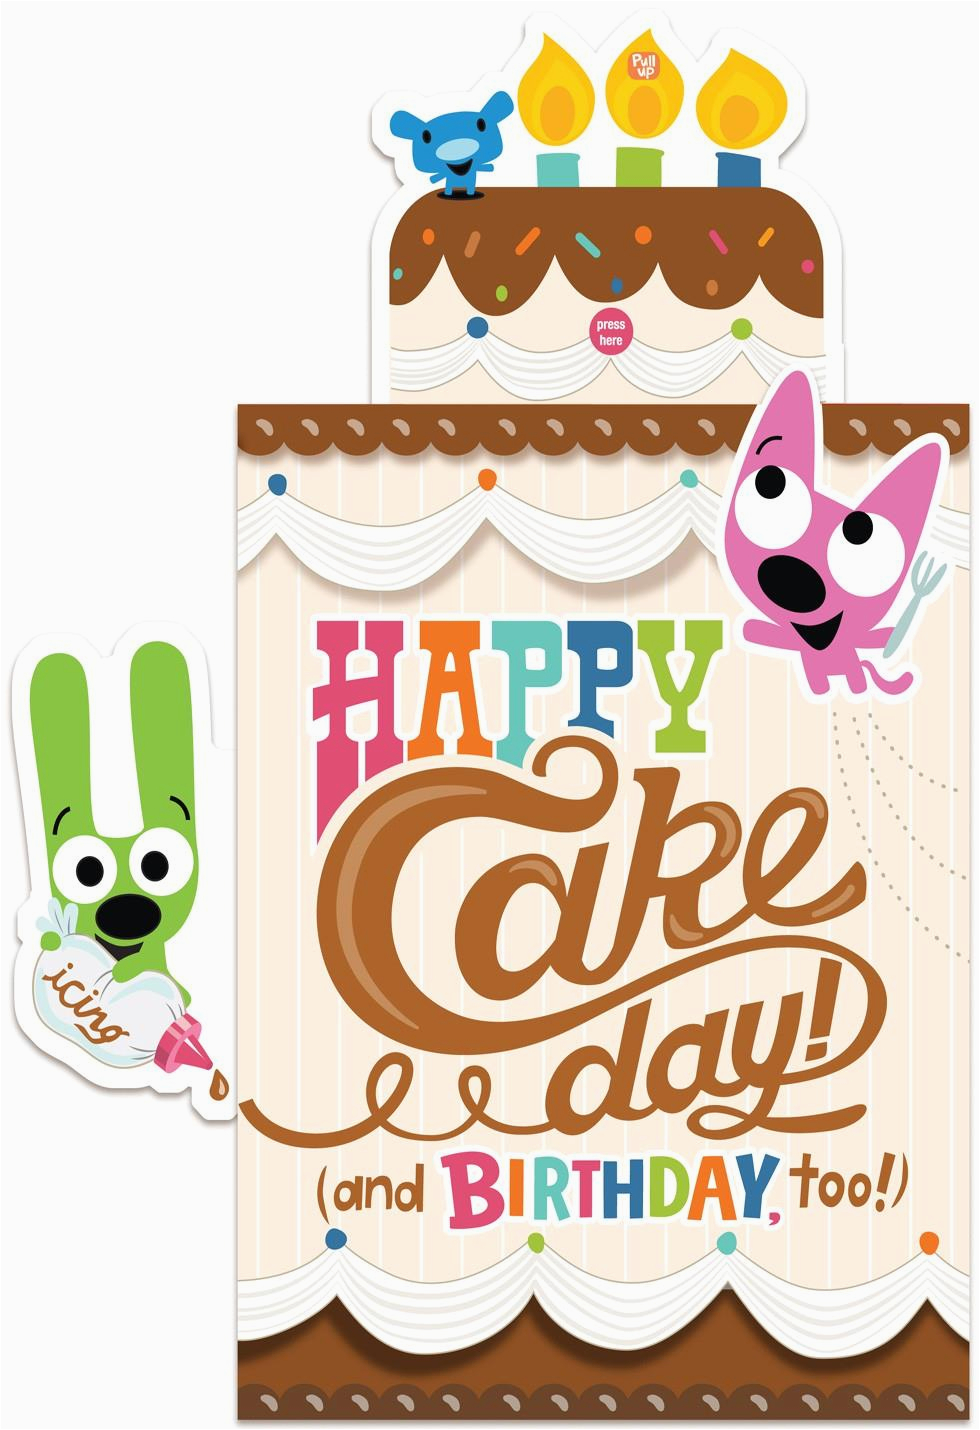 Hoops And Yoyo Birthday Cards With Sound Pop Up Cake Card Greeting Hallmark